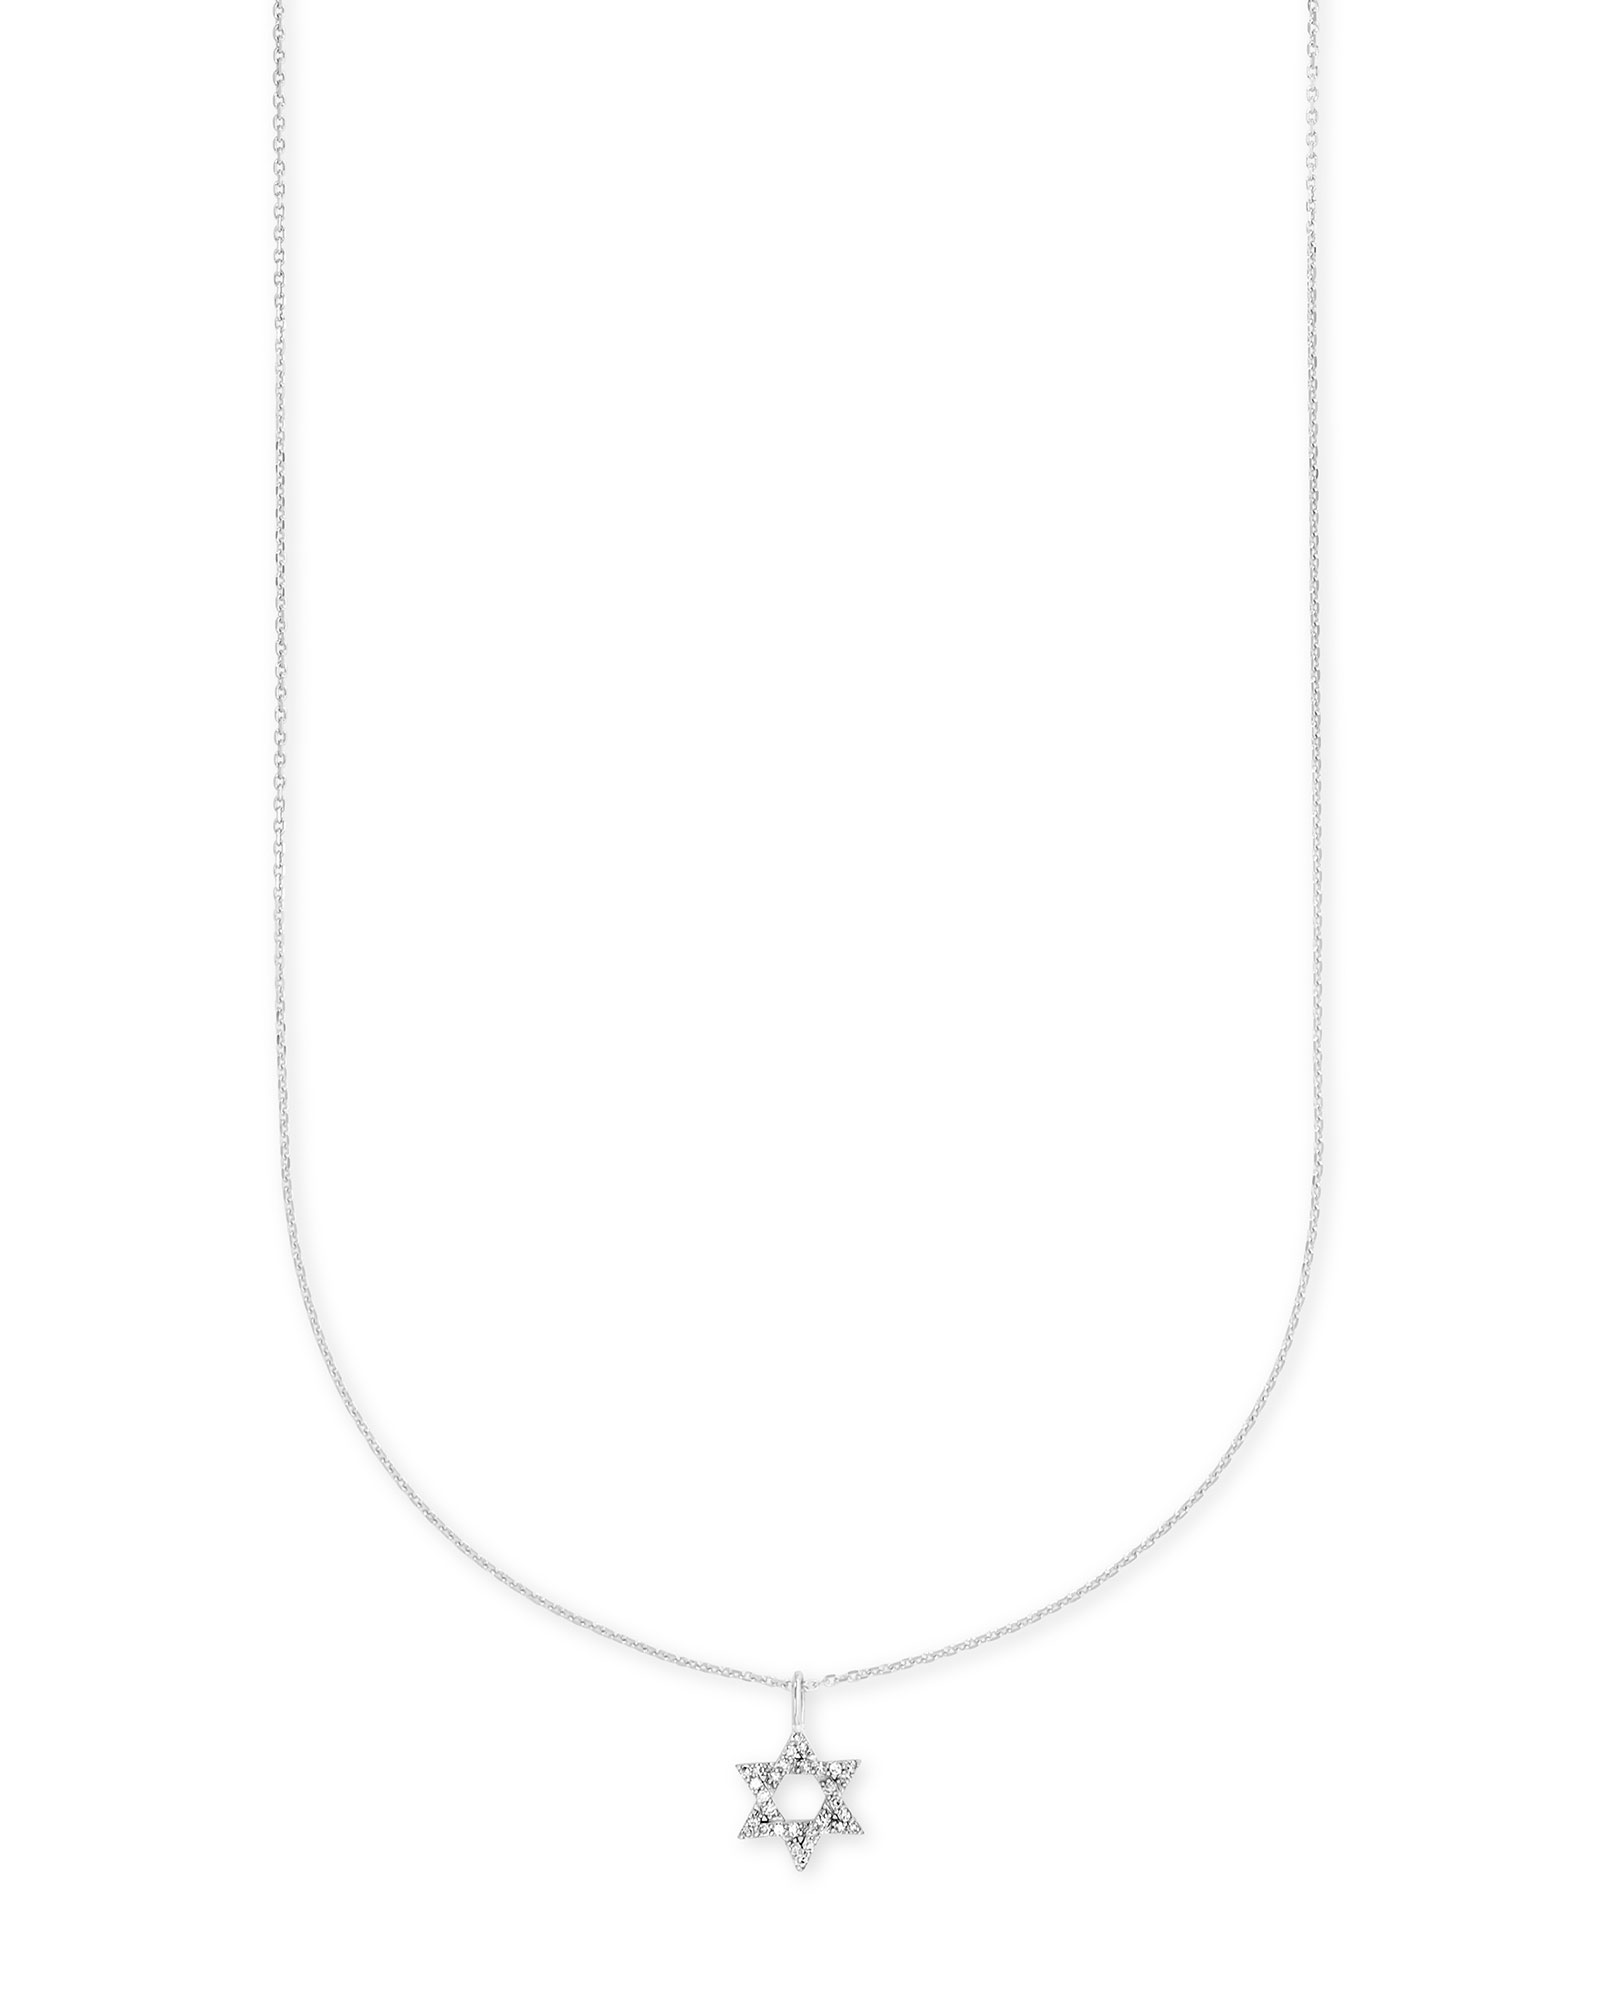 Star of David 14k White Gold Pendant Necklace in White Diamonds